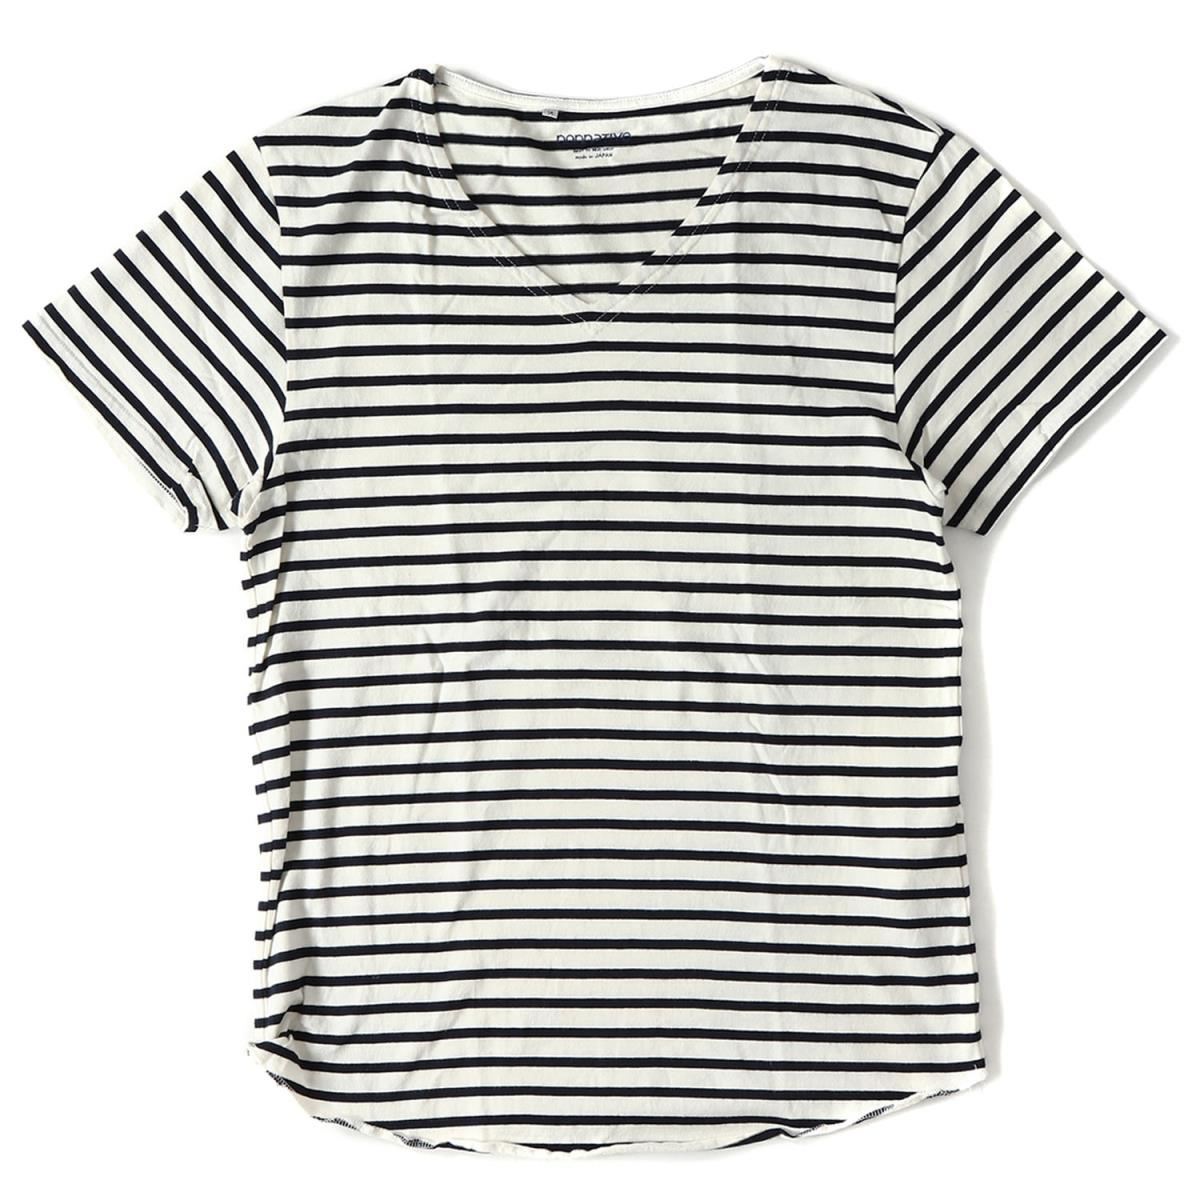 6e6fdbba63b784 NONNATIVE (non-native) Malin horizontal stripe V neck T-shirt (MARINER TEE  SS V COTTON BORDER JERSEY) white X navy 2